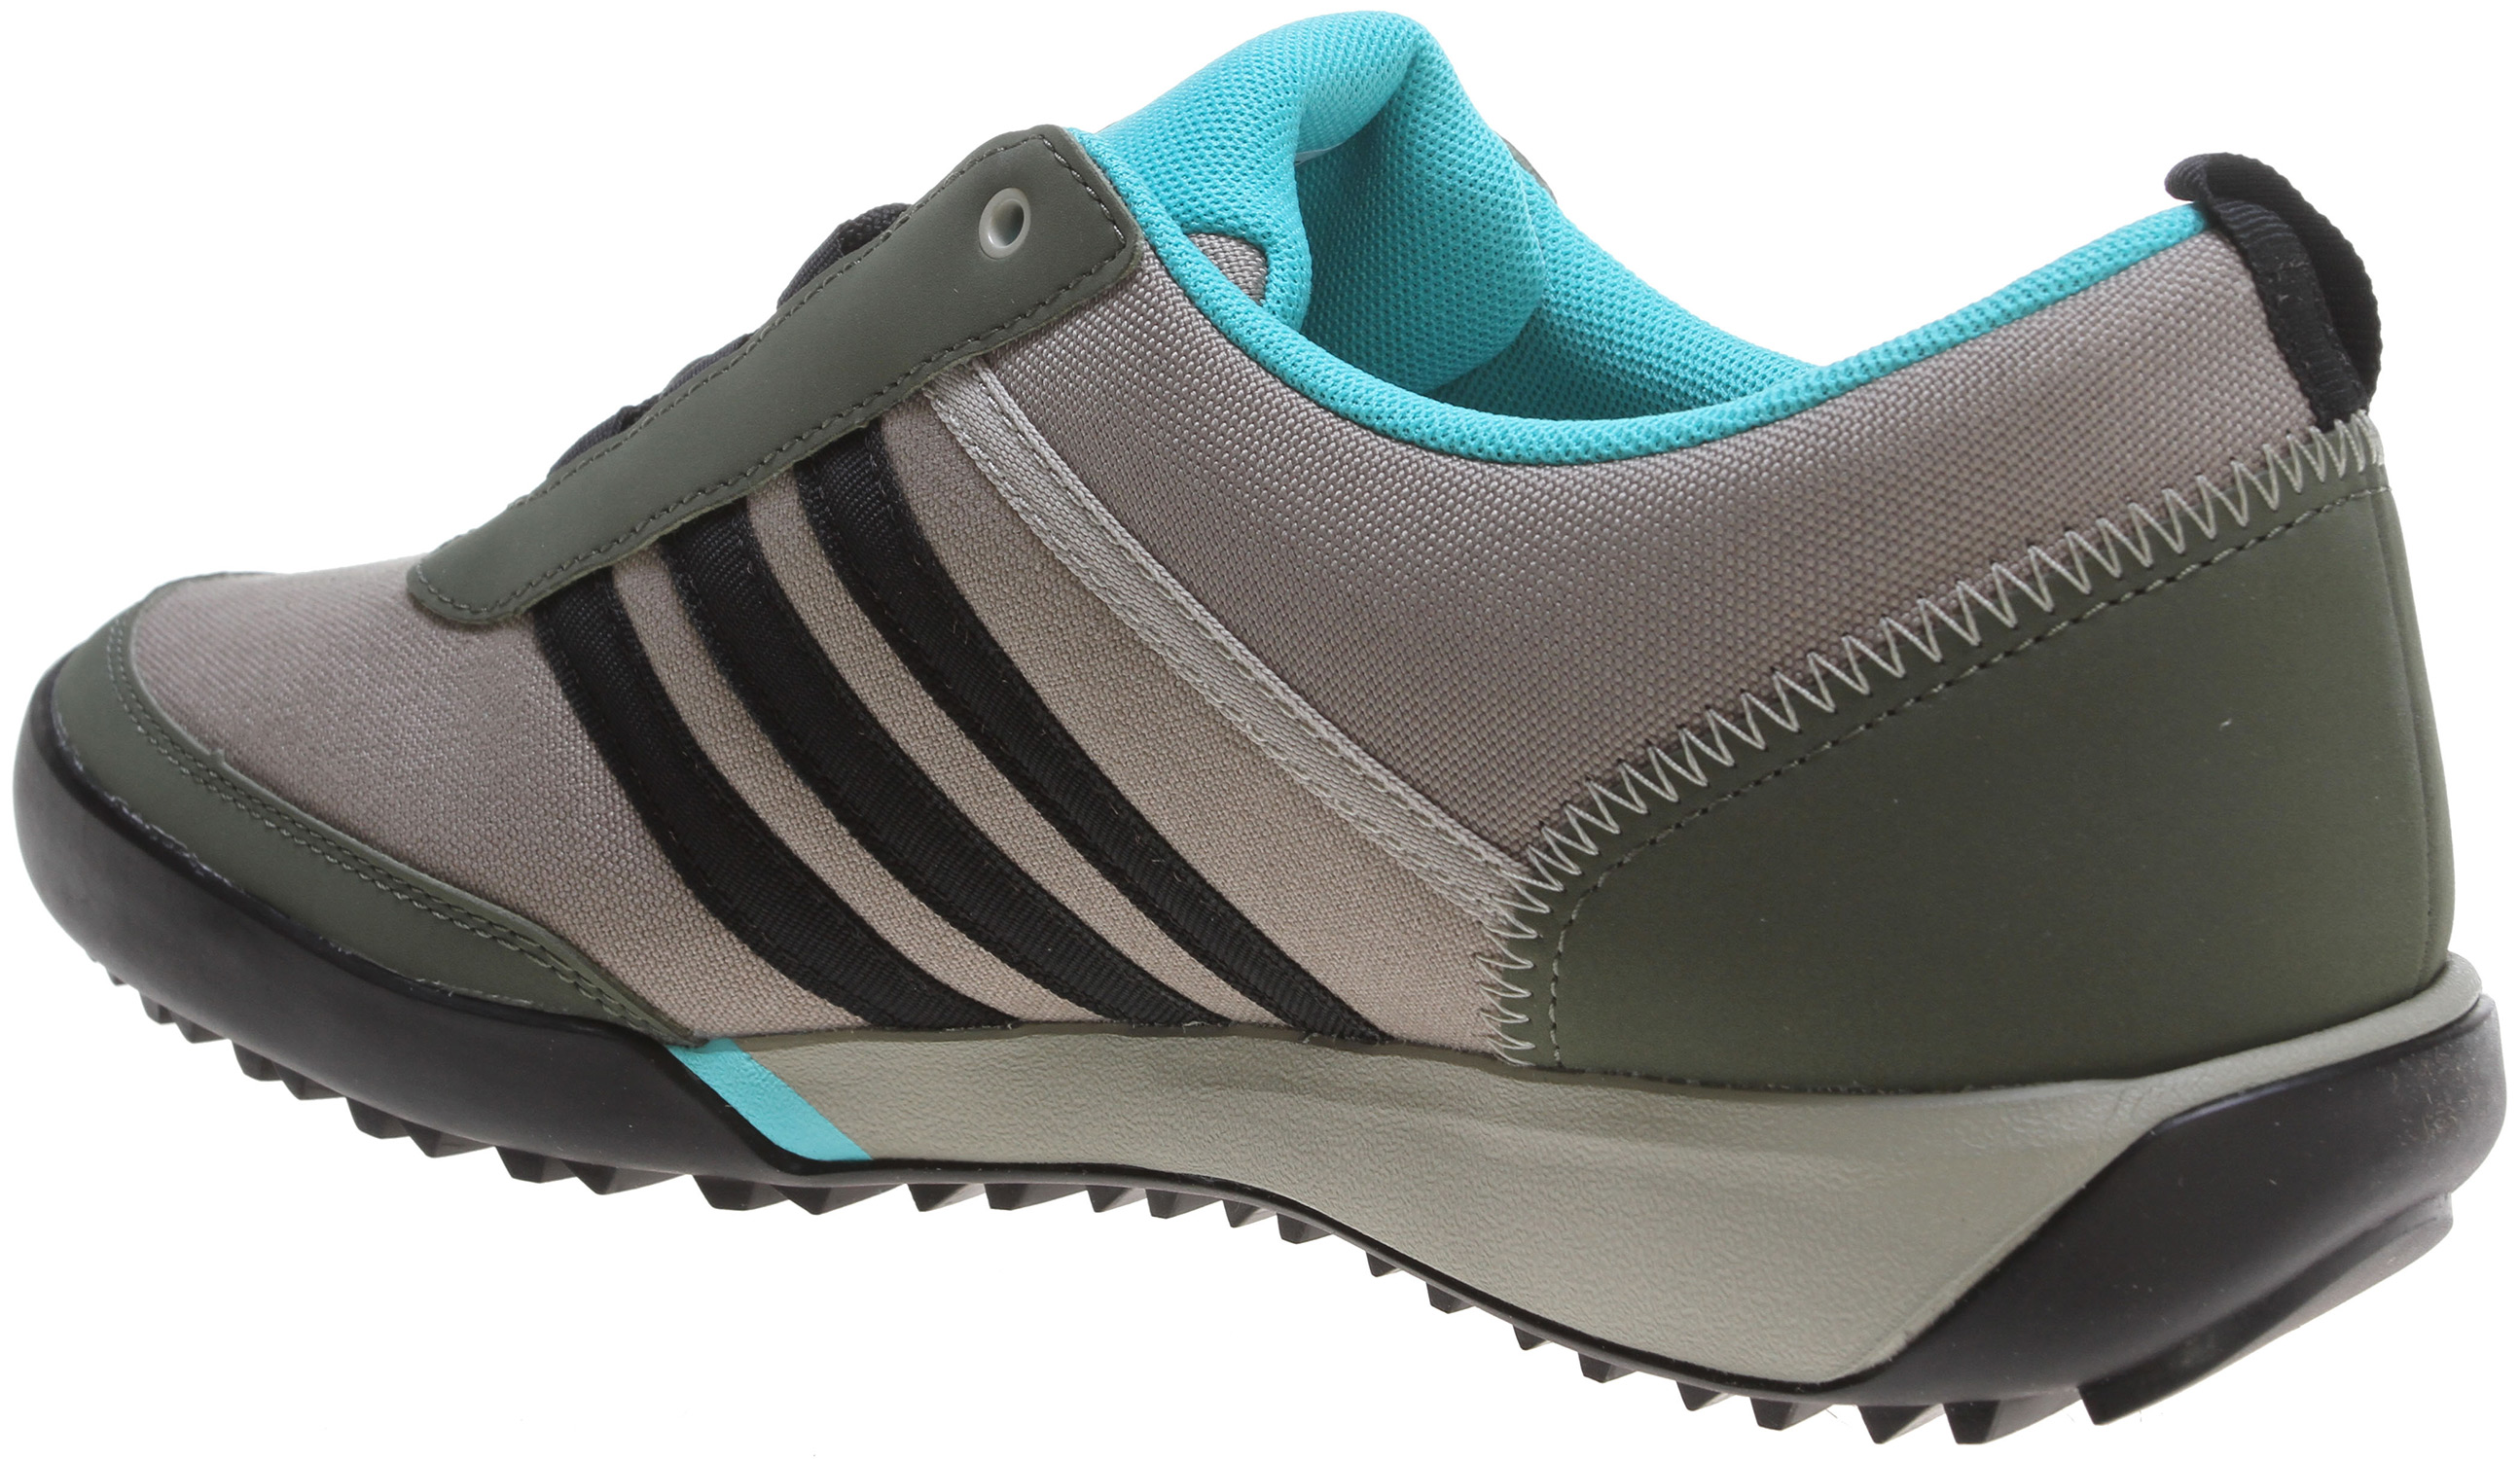 adidas daroga sleek canvas hiking shoes - womens VABRIST